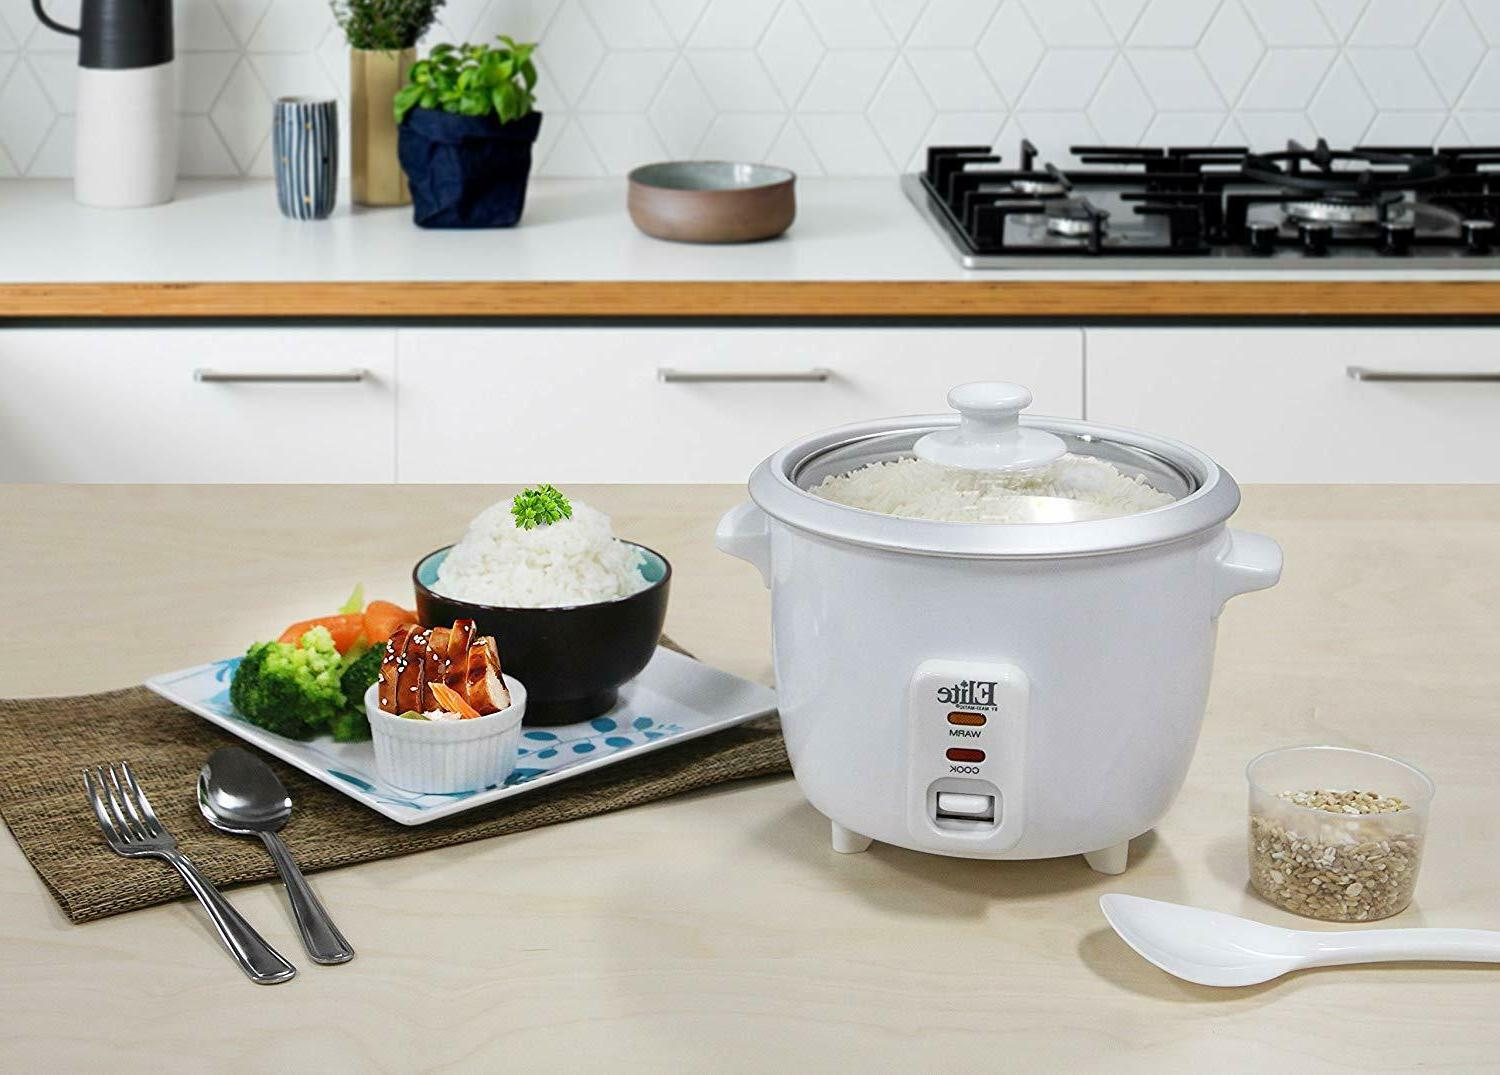 NEW 6 Rice Cooker with Keep Touch